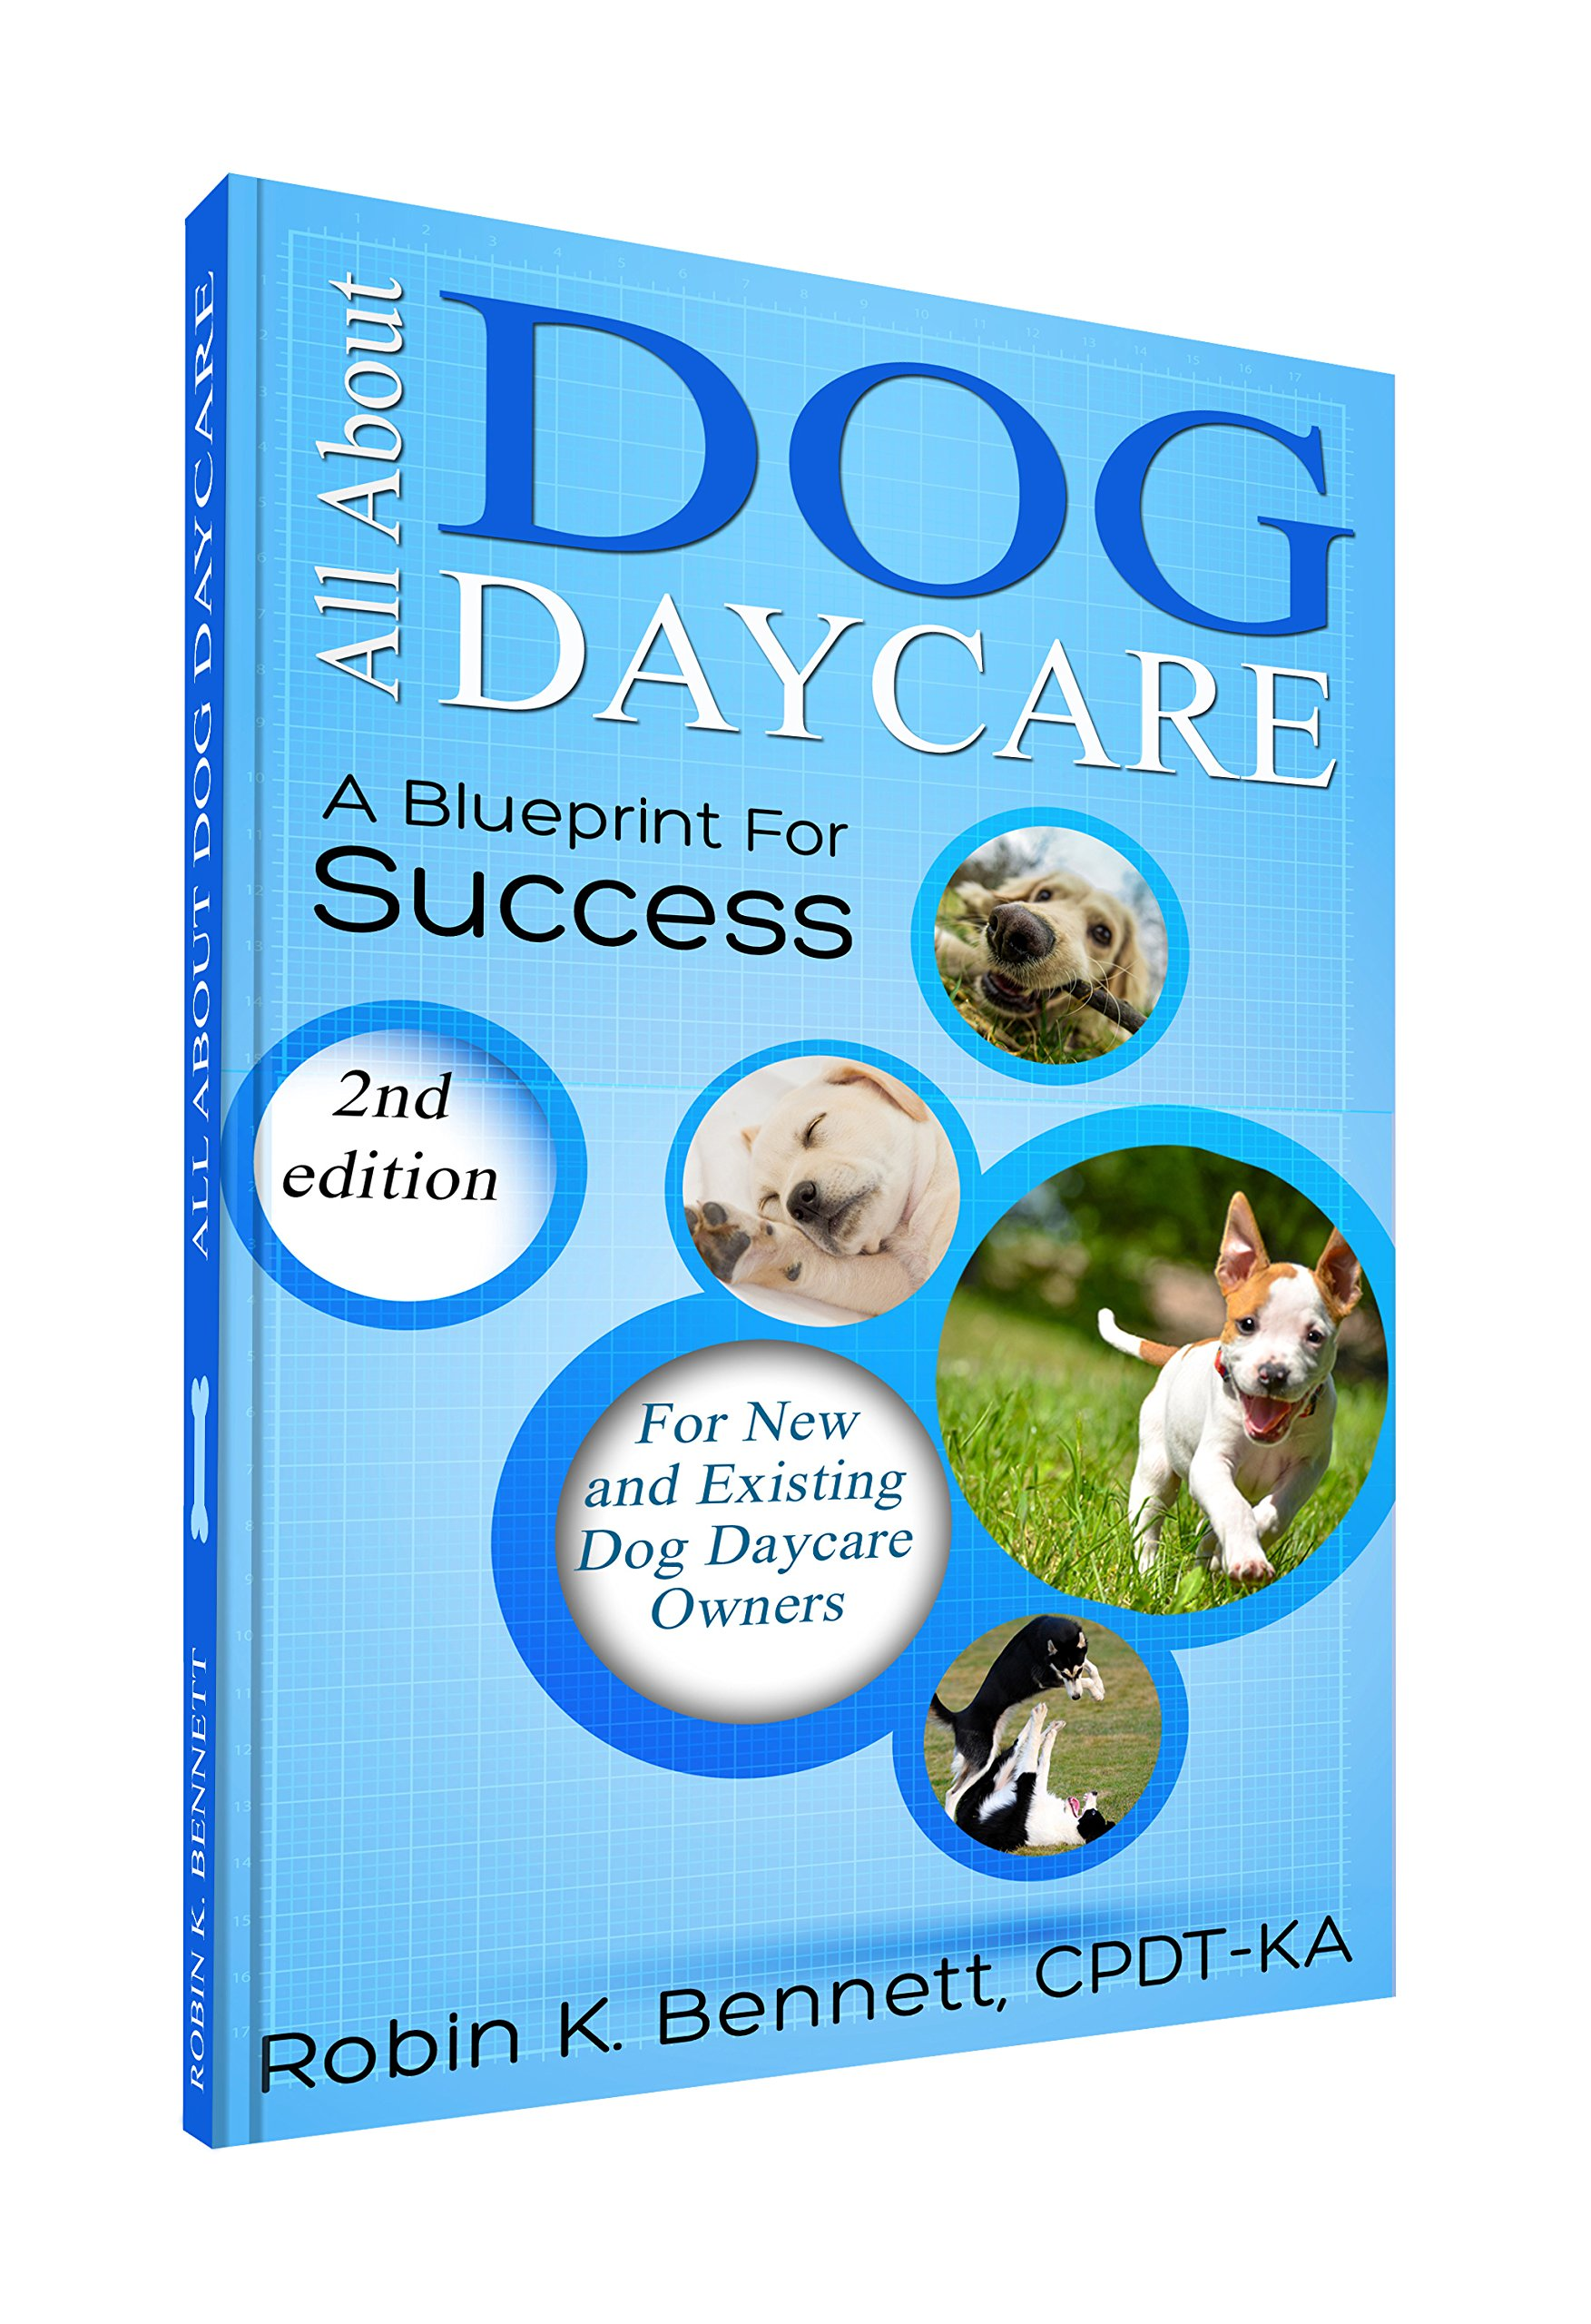 All about Dog Daycare: A Blueprint for Success: Robin K Bennett